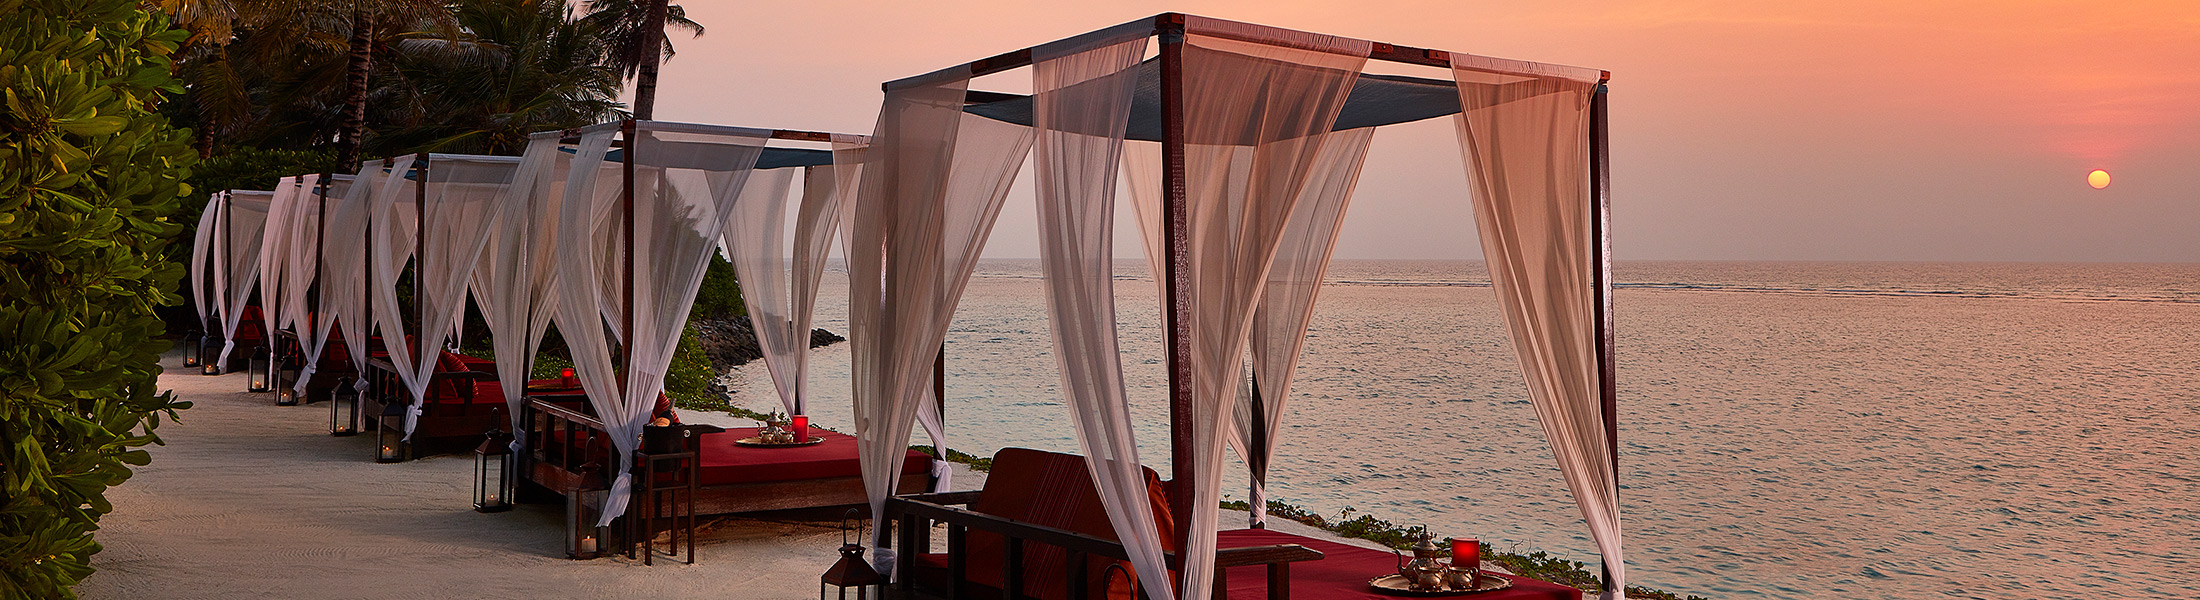 Cabanas at sunset at One&Only Reethi Rah